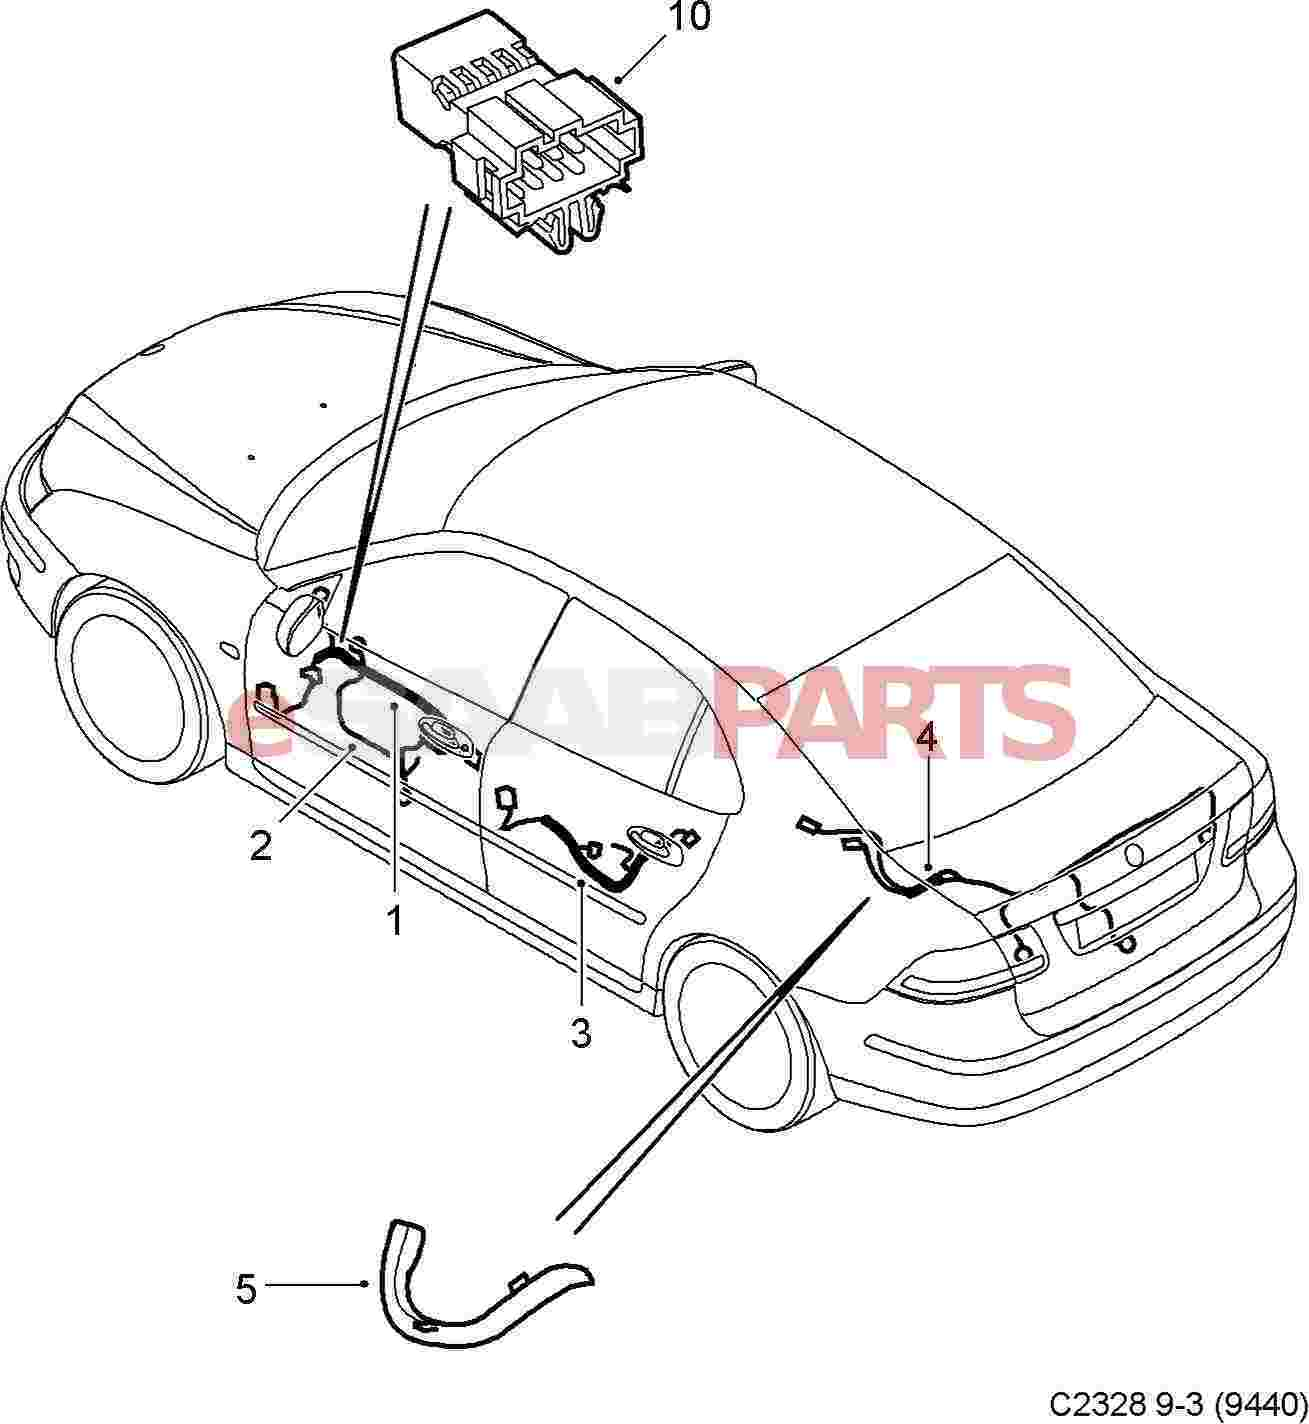 Photo Of Gearbox Oil Fill Level additionally 12791726 moreover Saab 95 Fuse Box furthermore Cadillac Sunroof Parts besides 2006 Subaru Forester Exhaust Diagram. on 2011 saab 9 3 manual